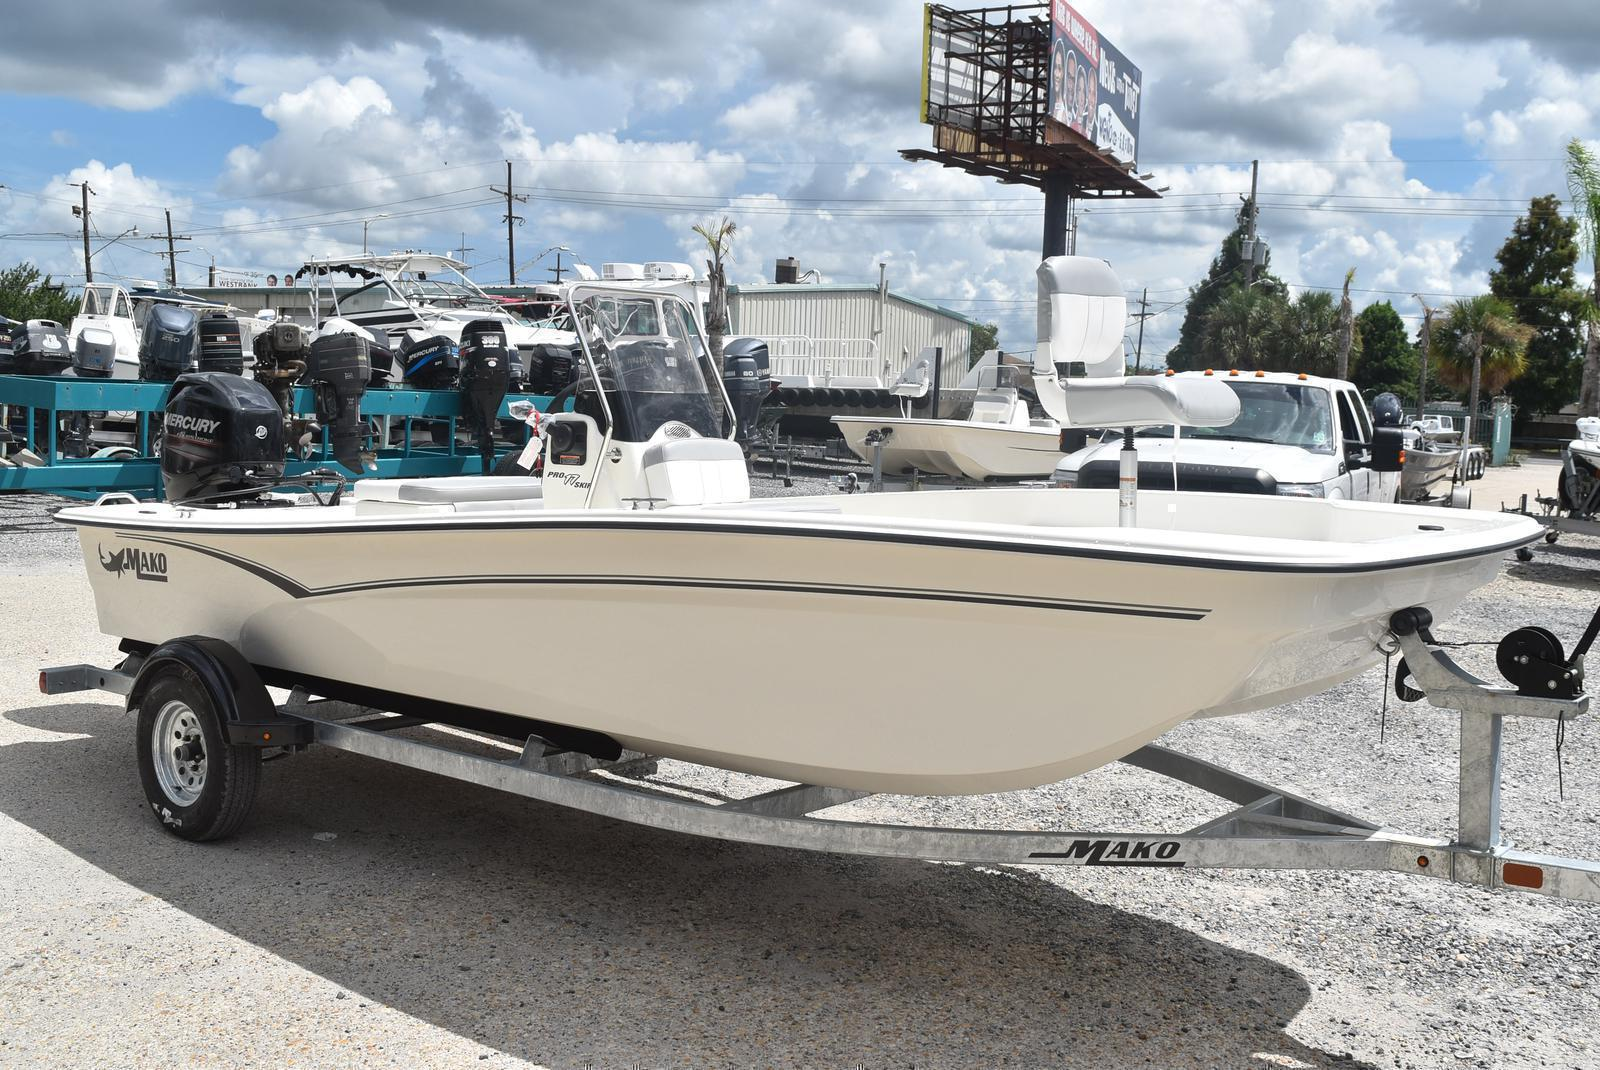 2020 Mako boat for sale, model of the boat is Pro Skiff 17, 75 ELPT & Image # 630 of 702